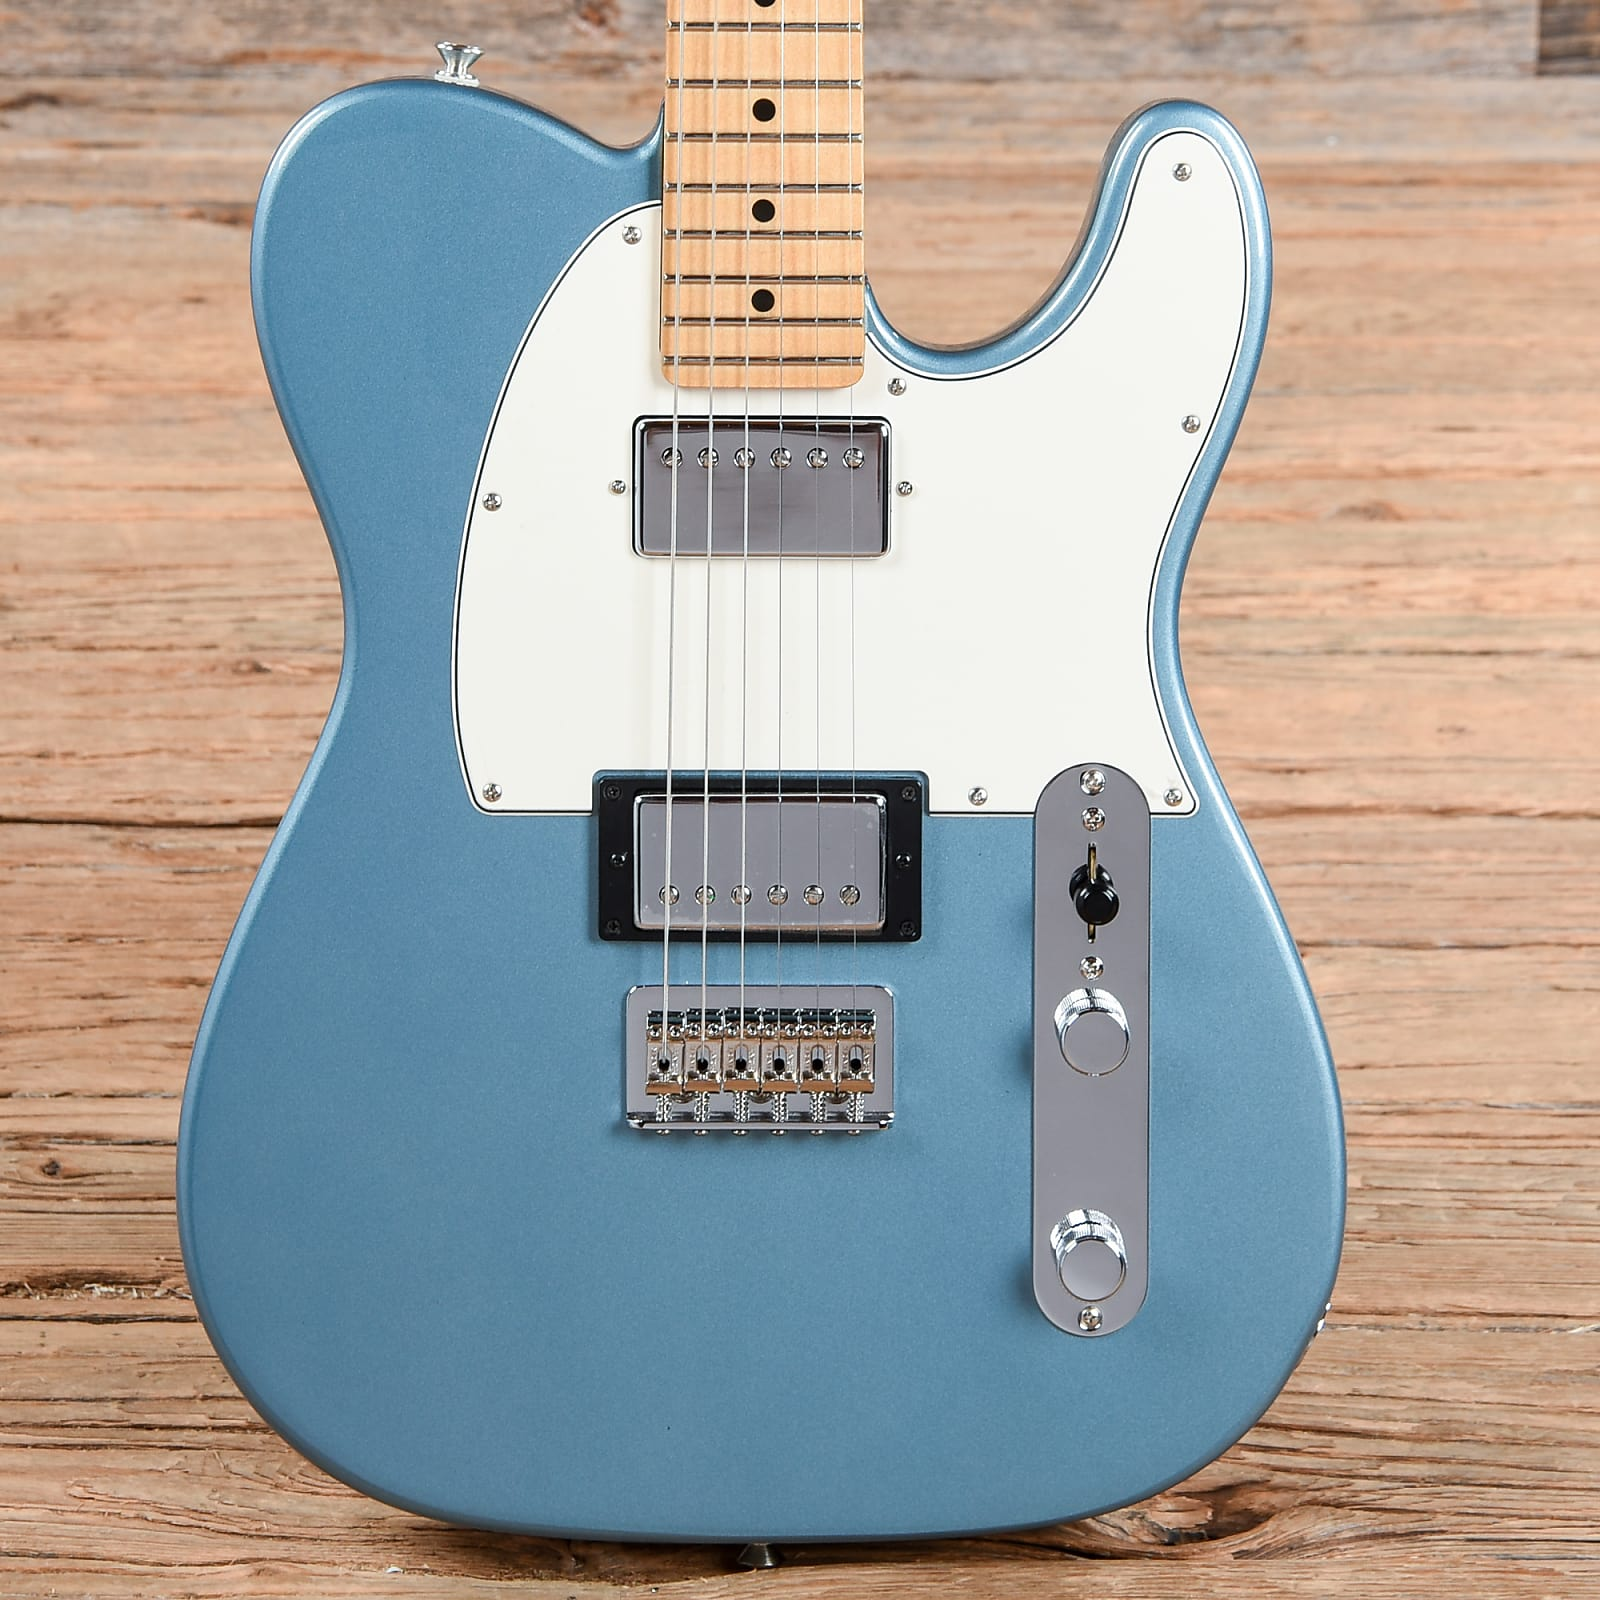 Fender Telecaster Hh >> Fender Player Telecaster Hh Tidepool Used